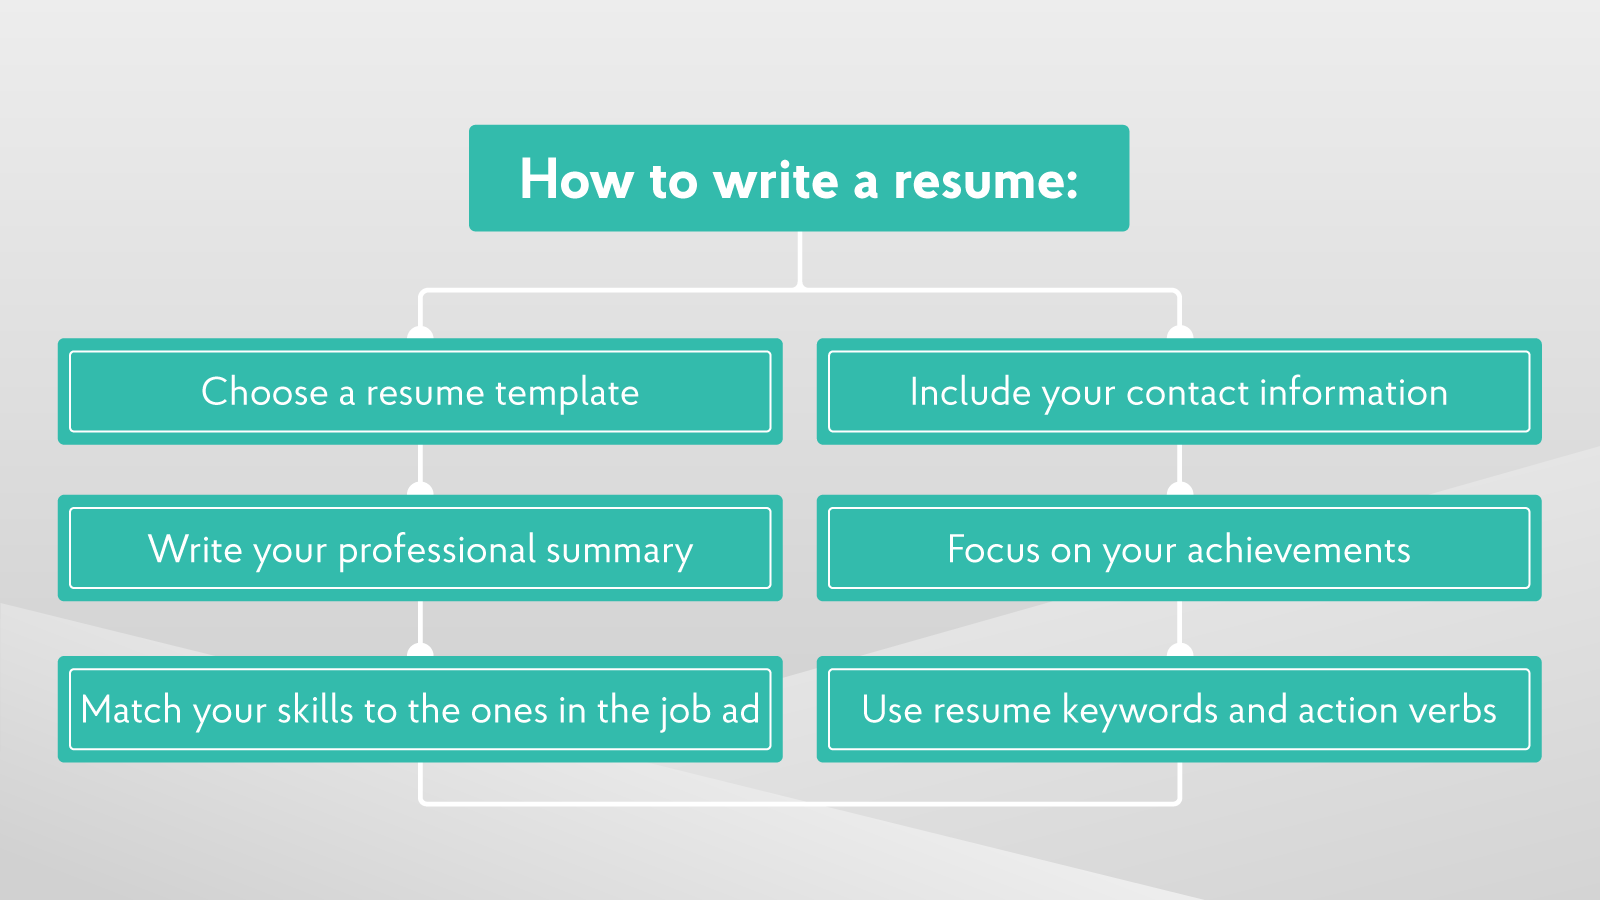 How To Write A Resume In   Guide For Beginner How To Write A Resume Step By Step Thesis Support Essay also Narrative Essay Papers  English Is My Second Language Essay